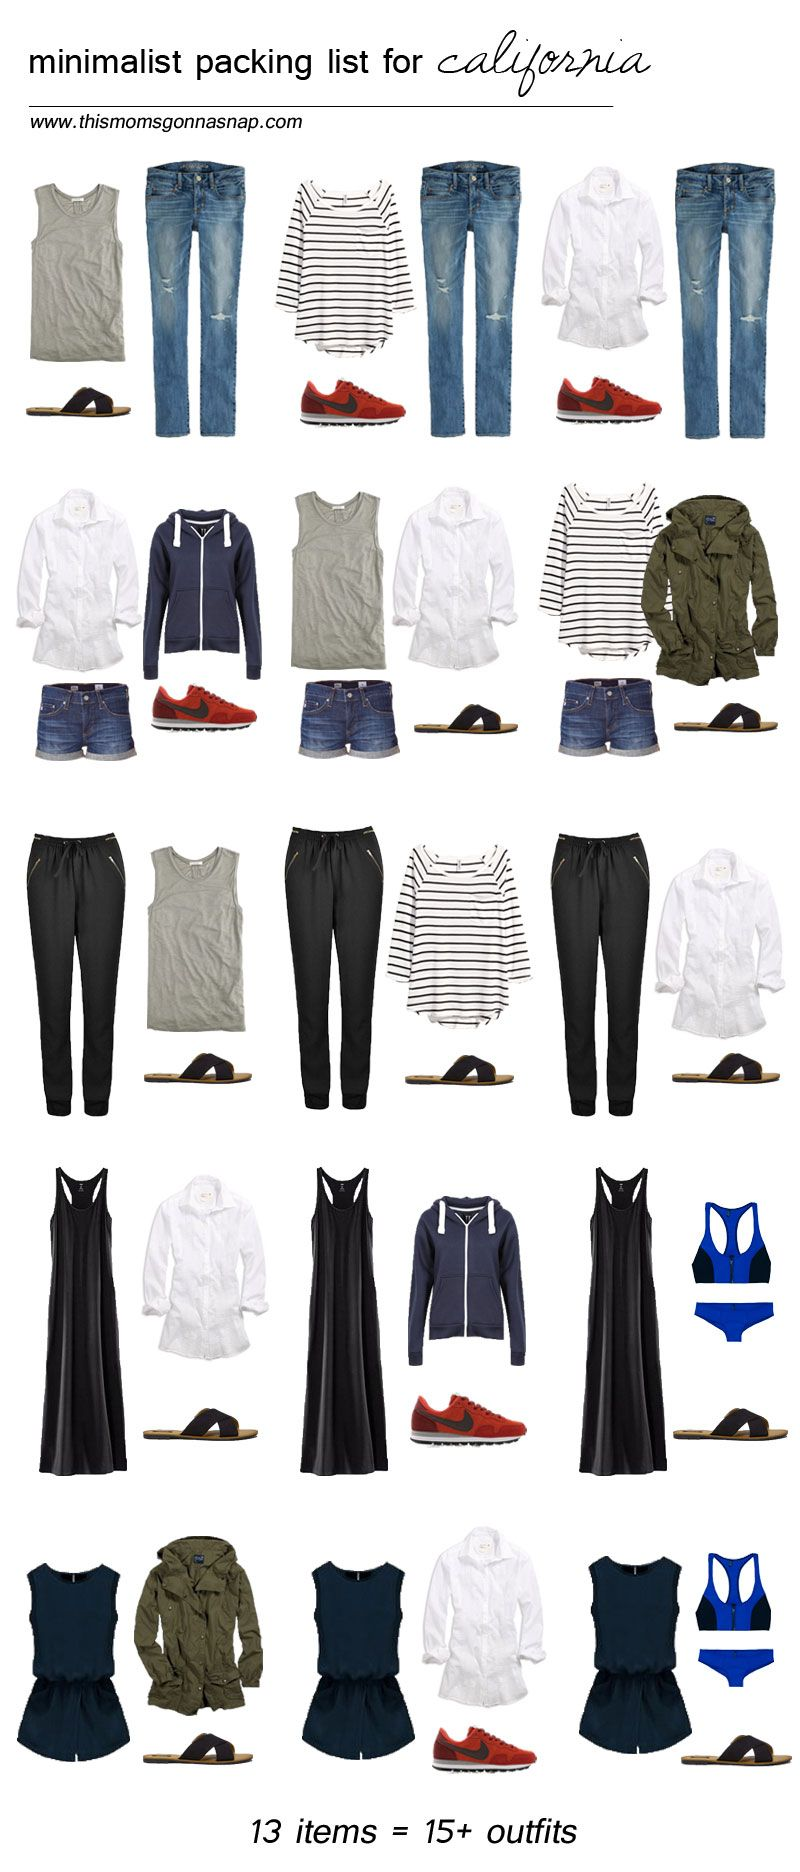 Mom Style, Packing List, Minimalist Wardrobe, Packing